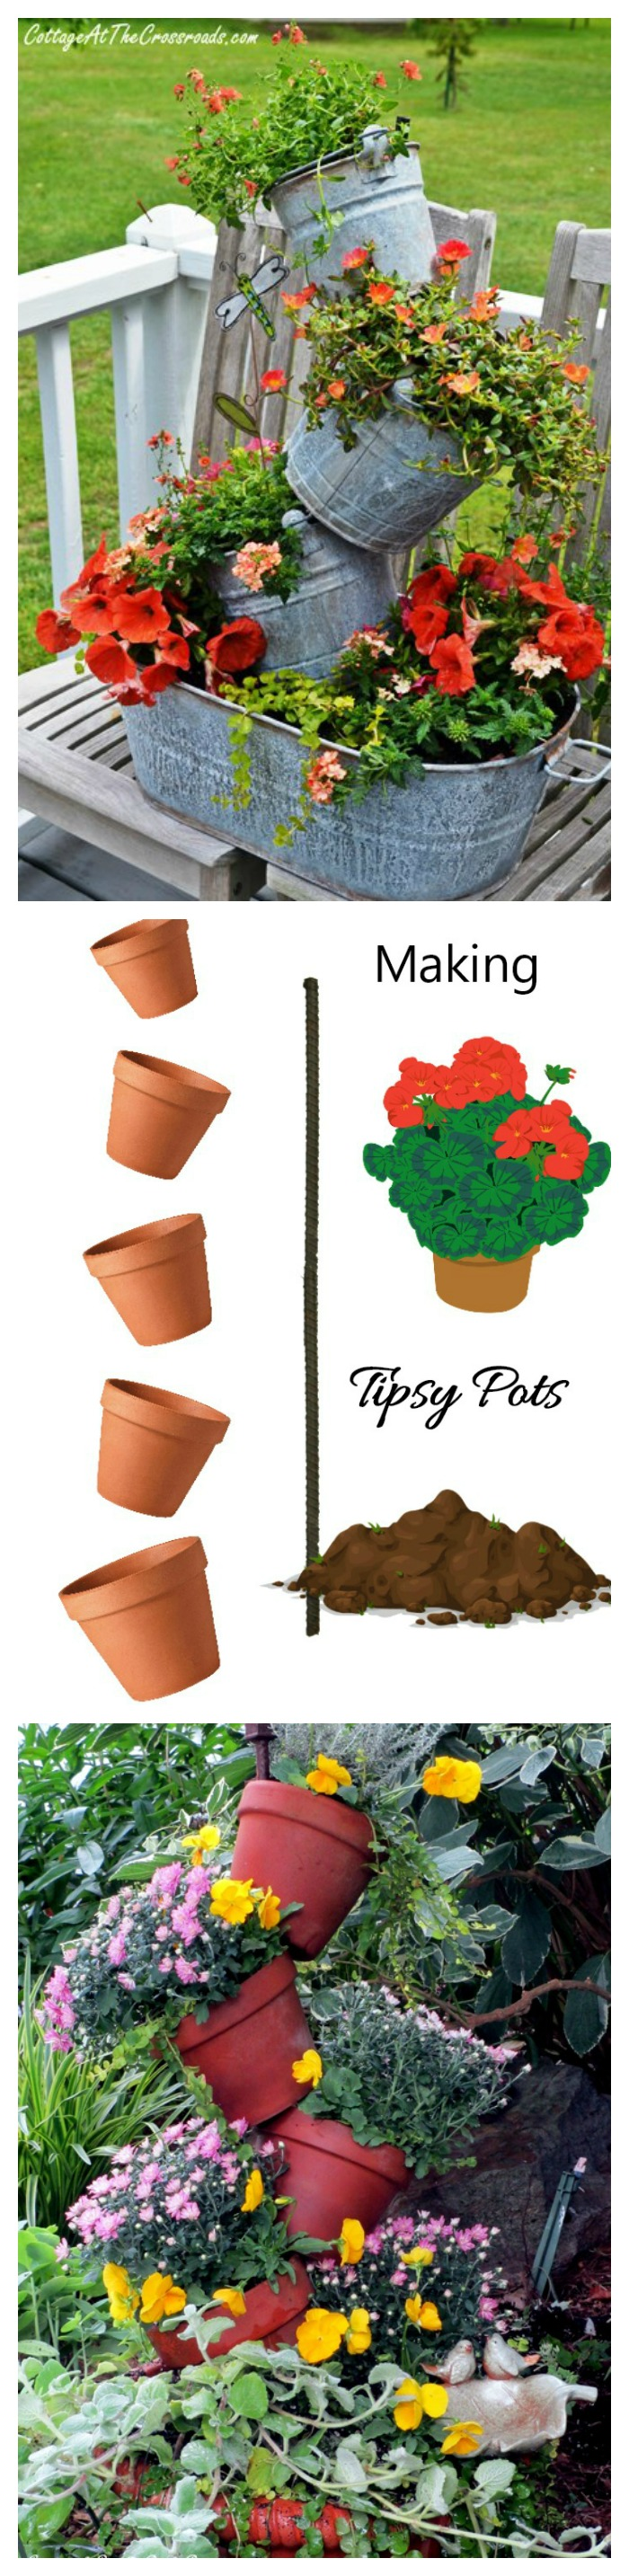 For a very creative gardening idea, try making topsy turvy planters.